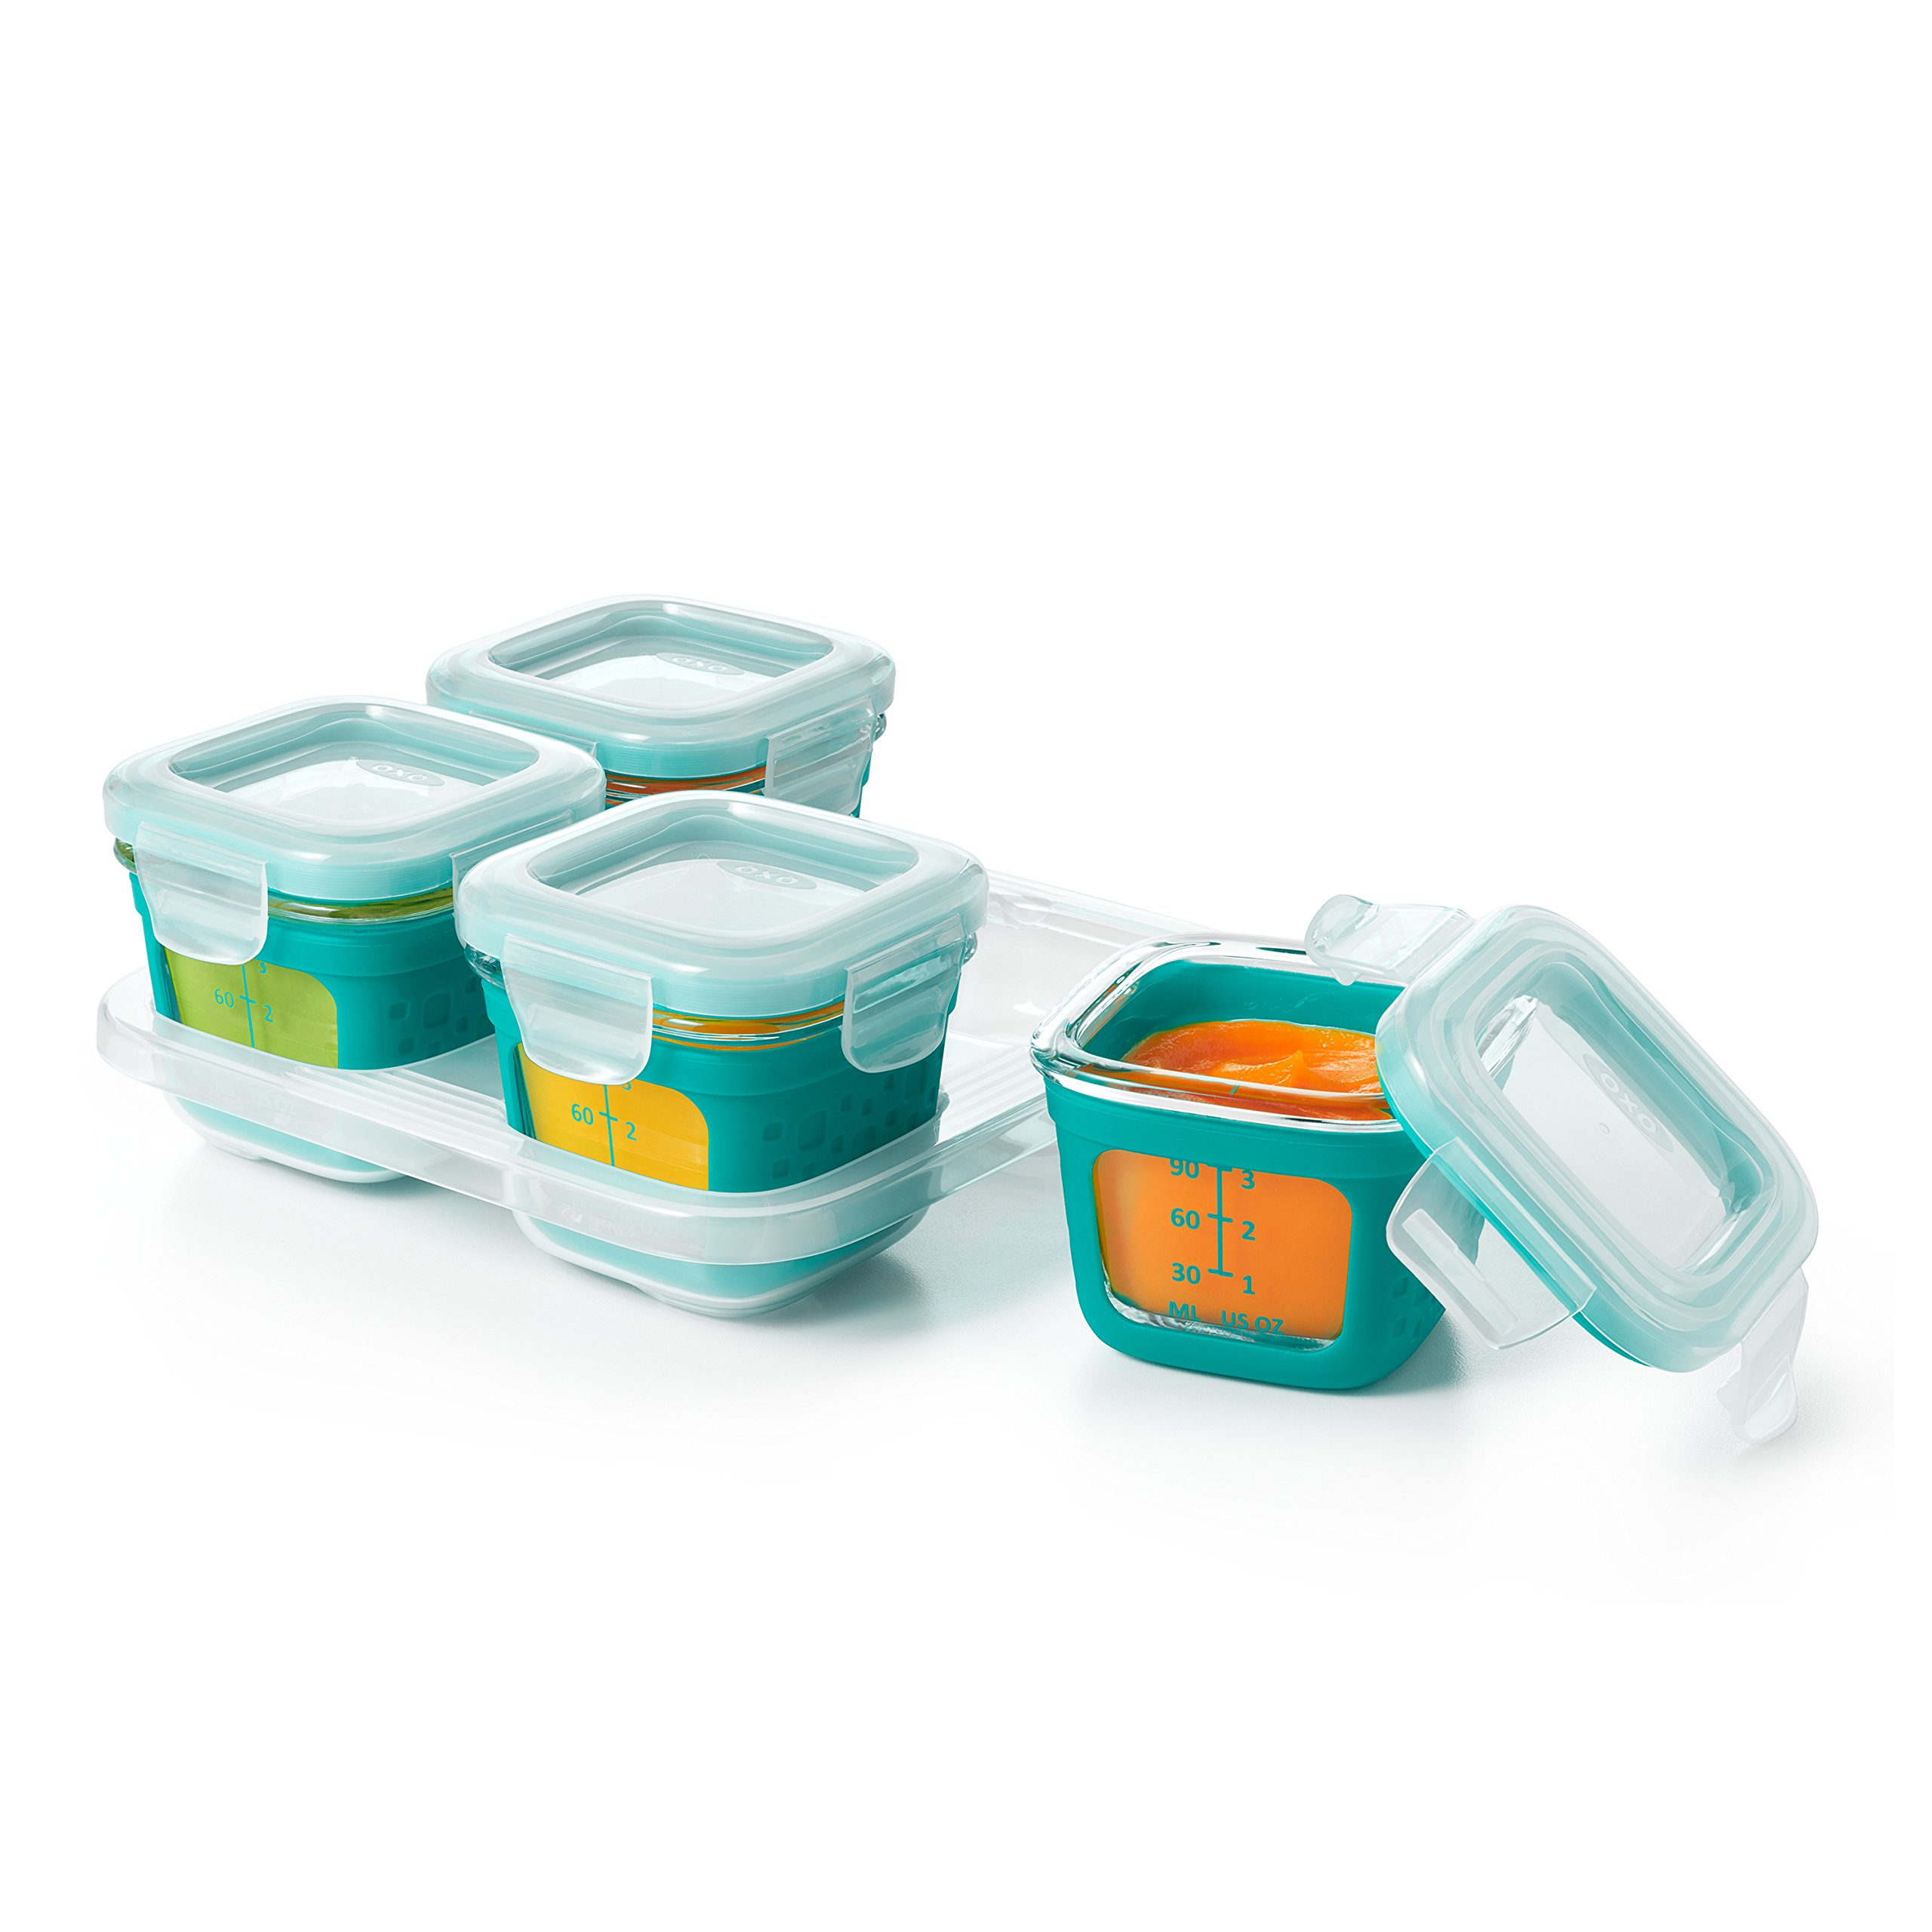 OXO Tot Glass Baby Blocks Food Storage Containers with Silicone Sleeves, Teal, 4 oz